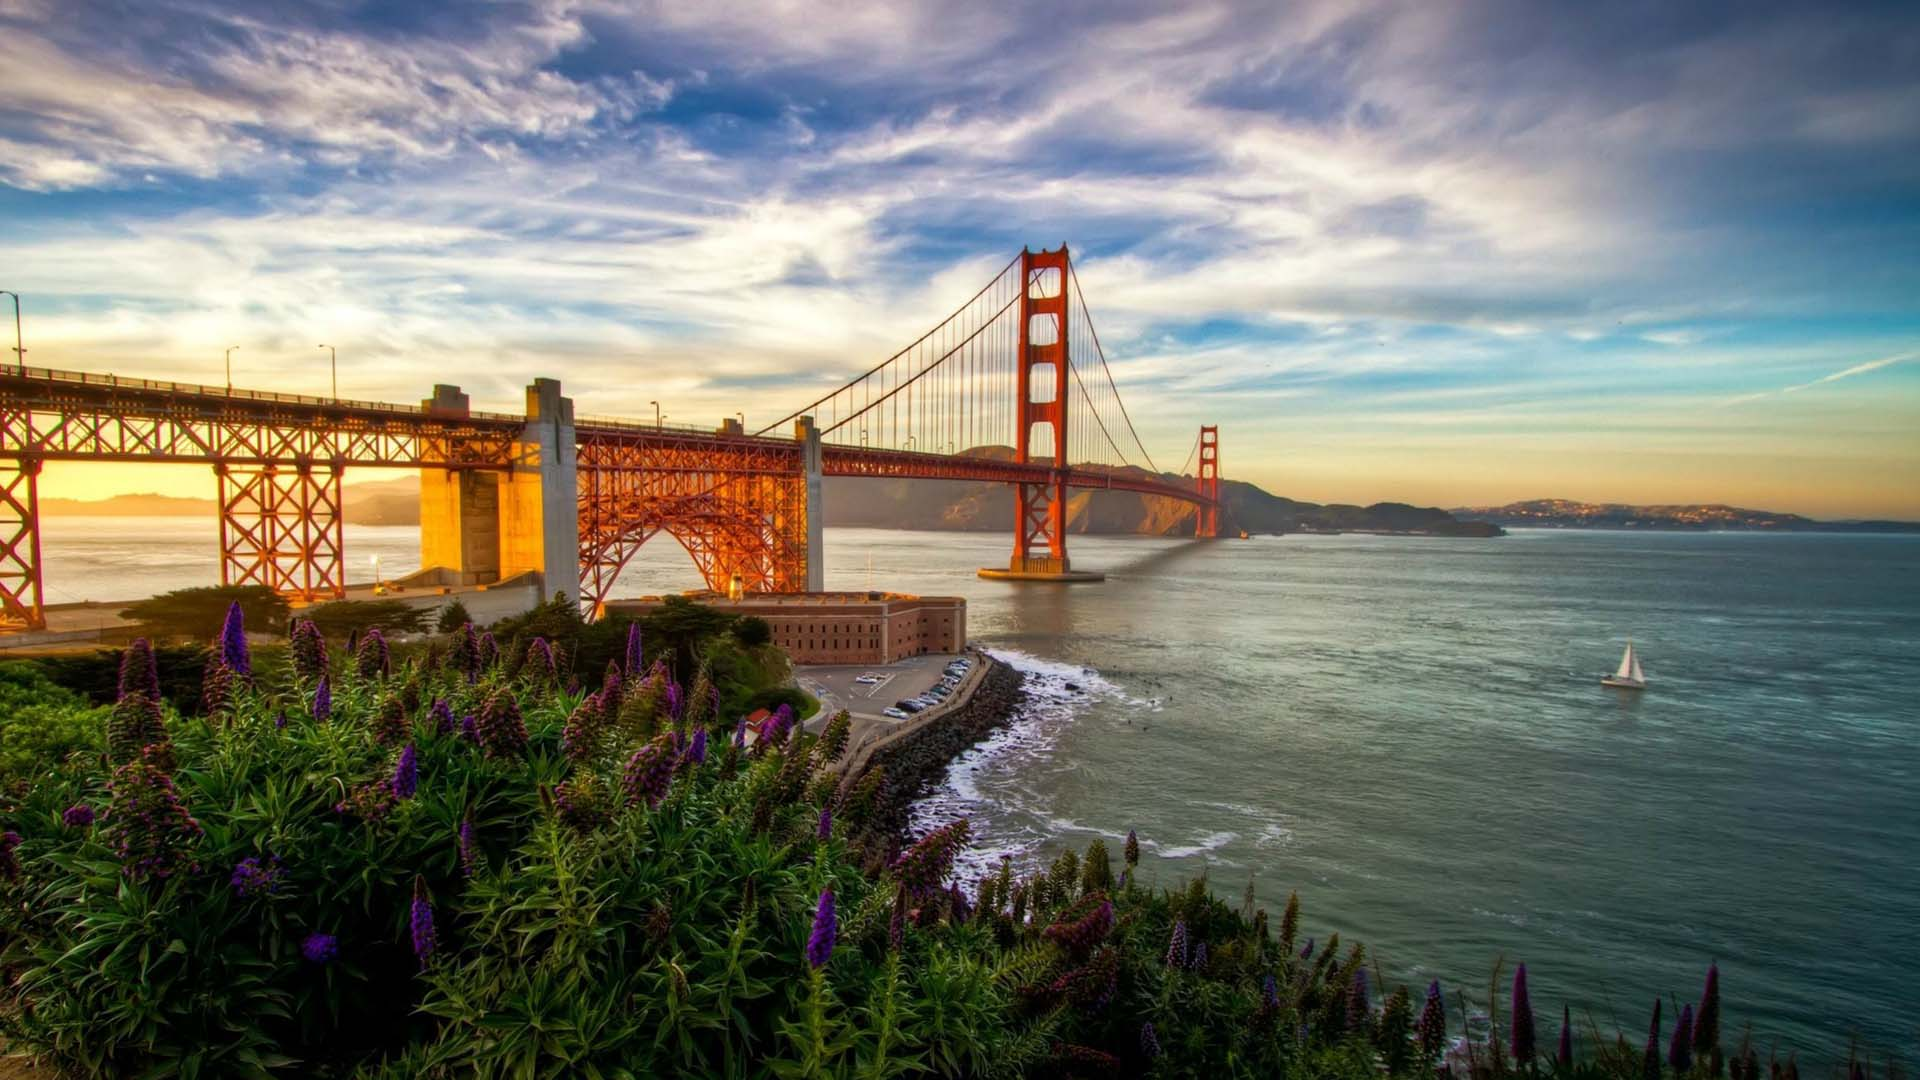 Summer In America: The Landscape In San Francisco